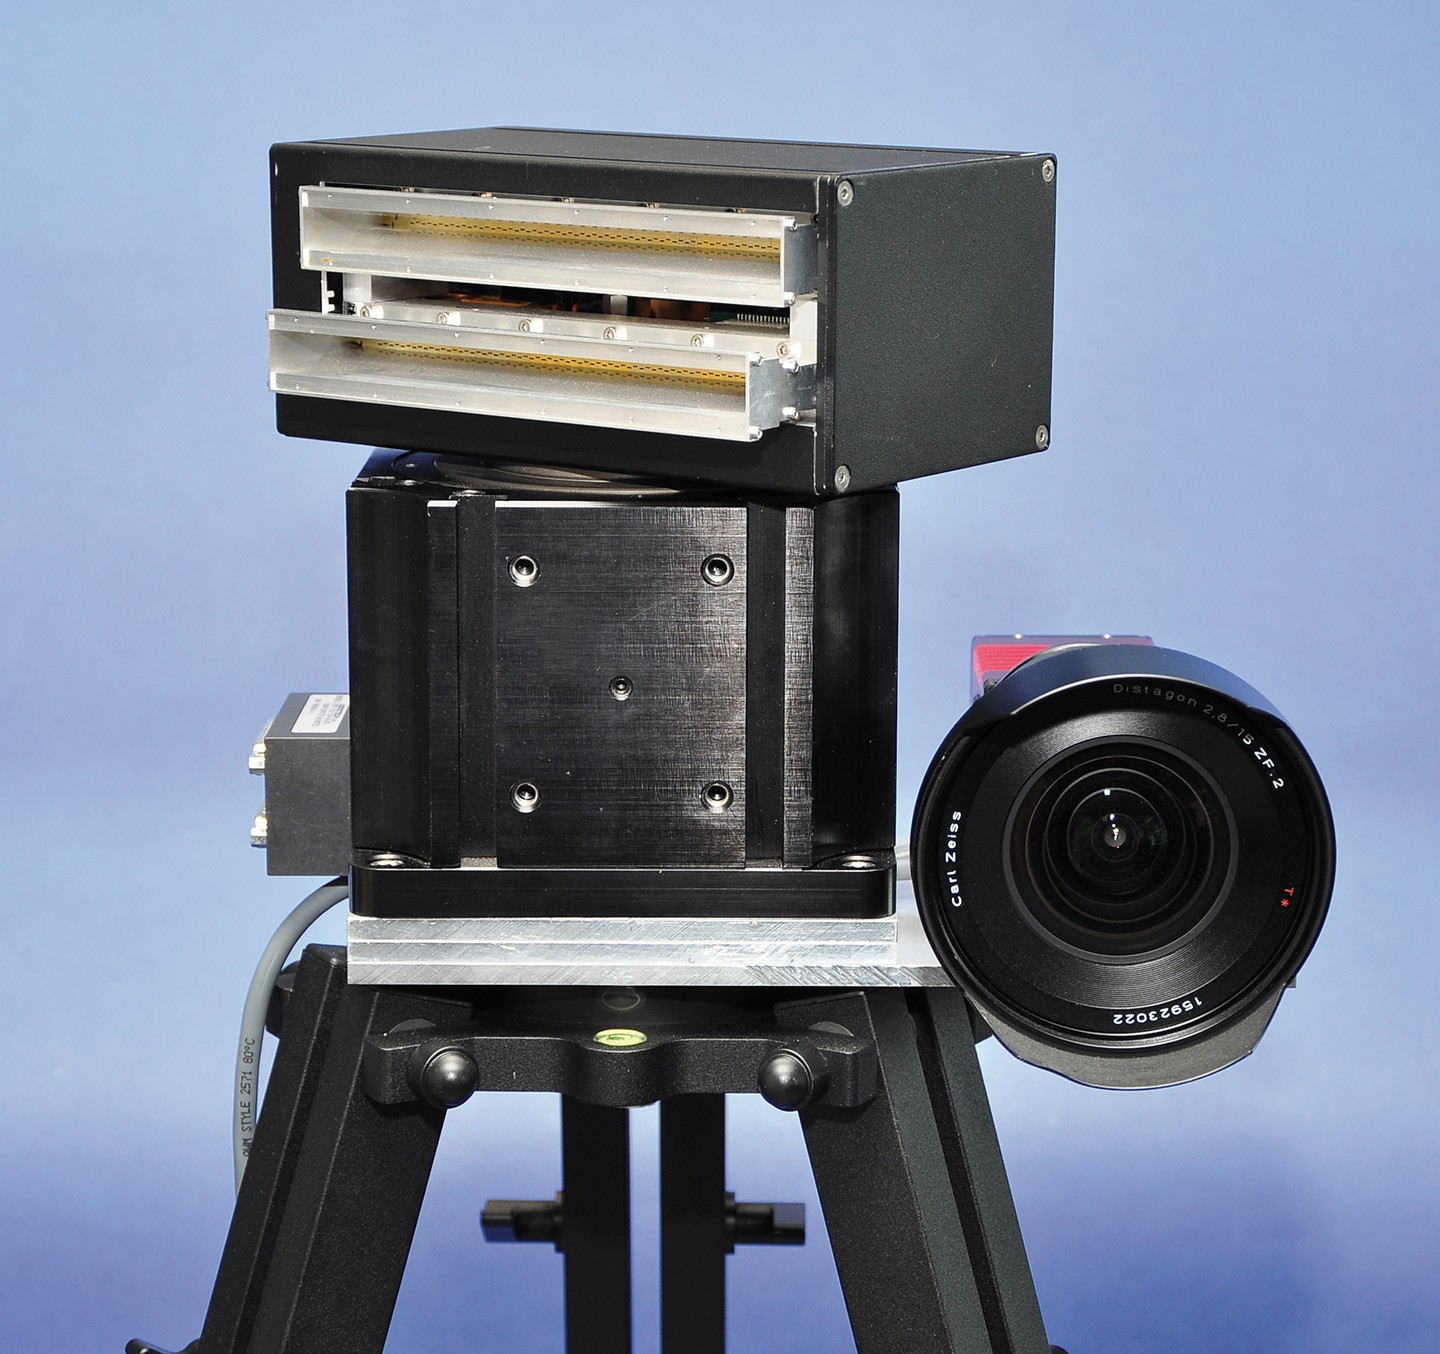 Mechanical scanning SSRS (Scanning Surveillance Radar System) with optical camera. The rotating sensor scans with a small aperture angle of 1.8° in azimuth.